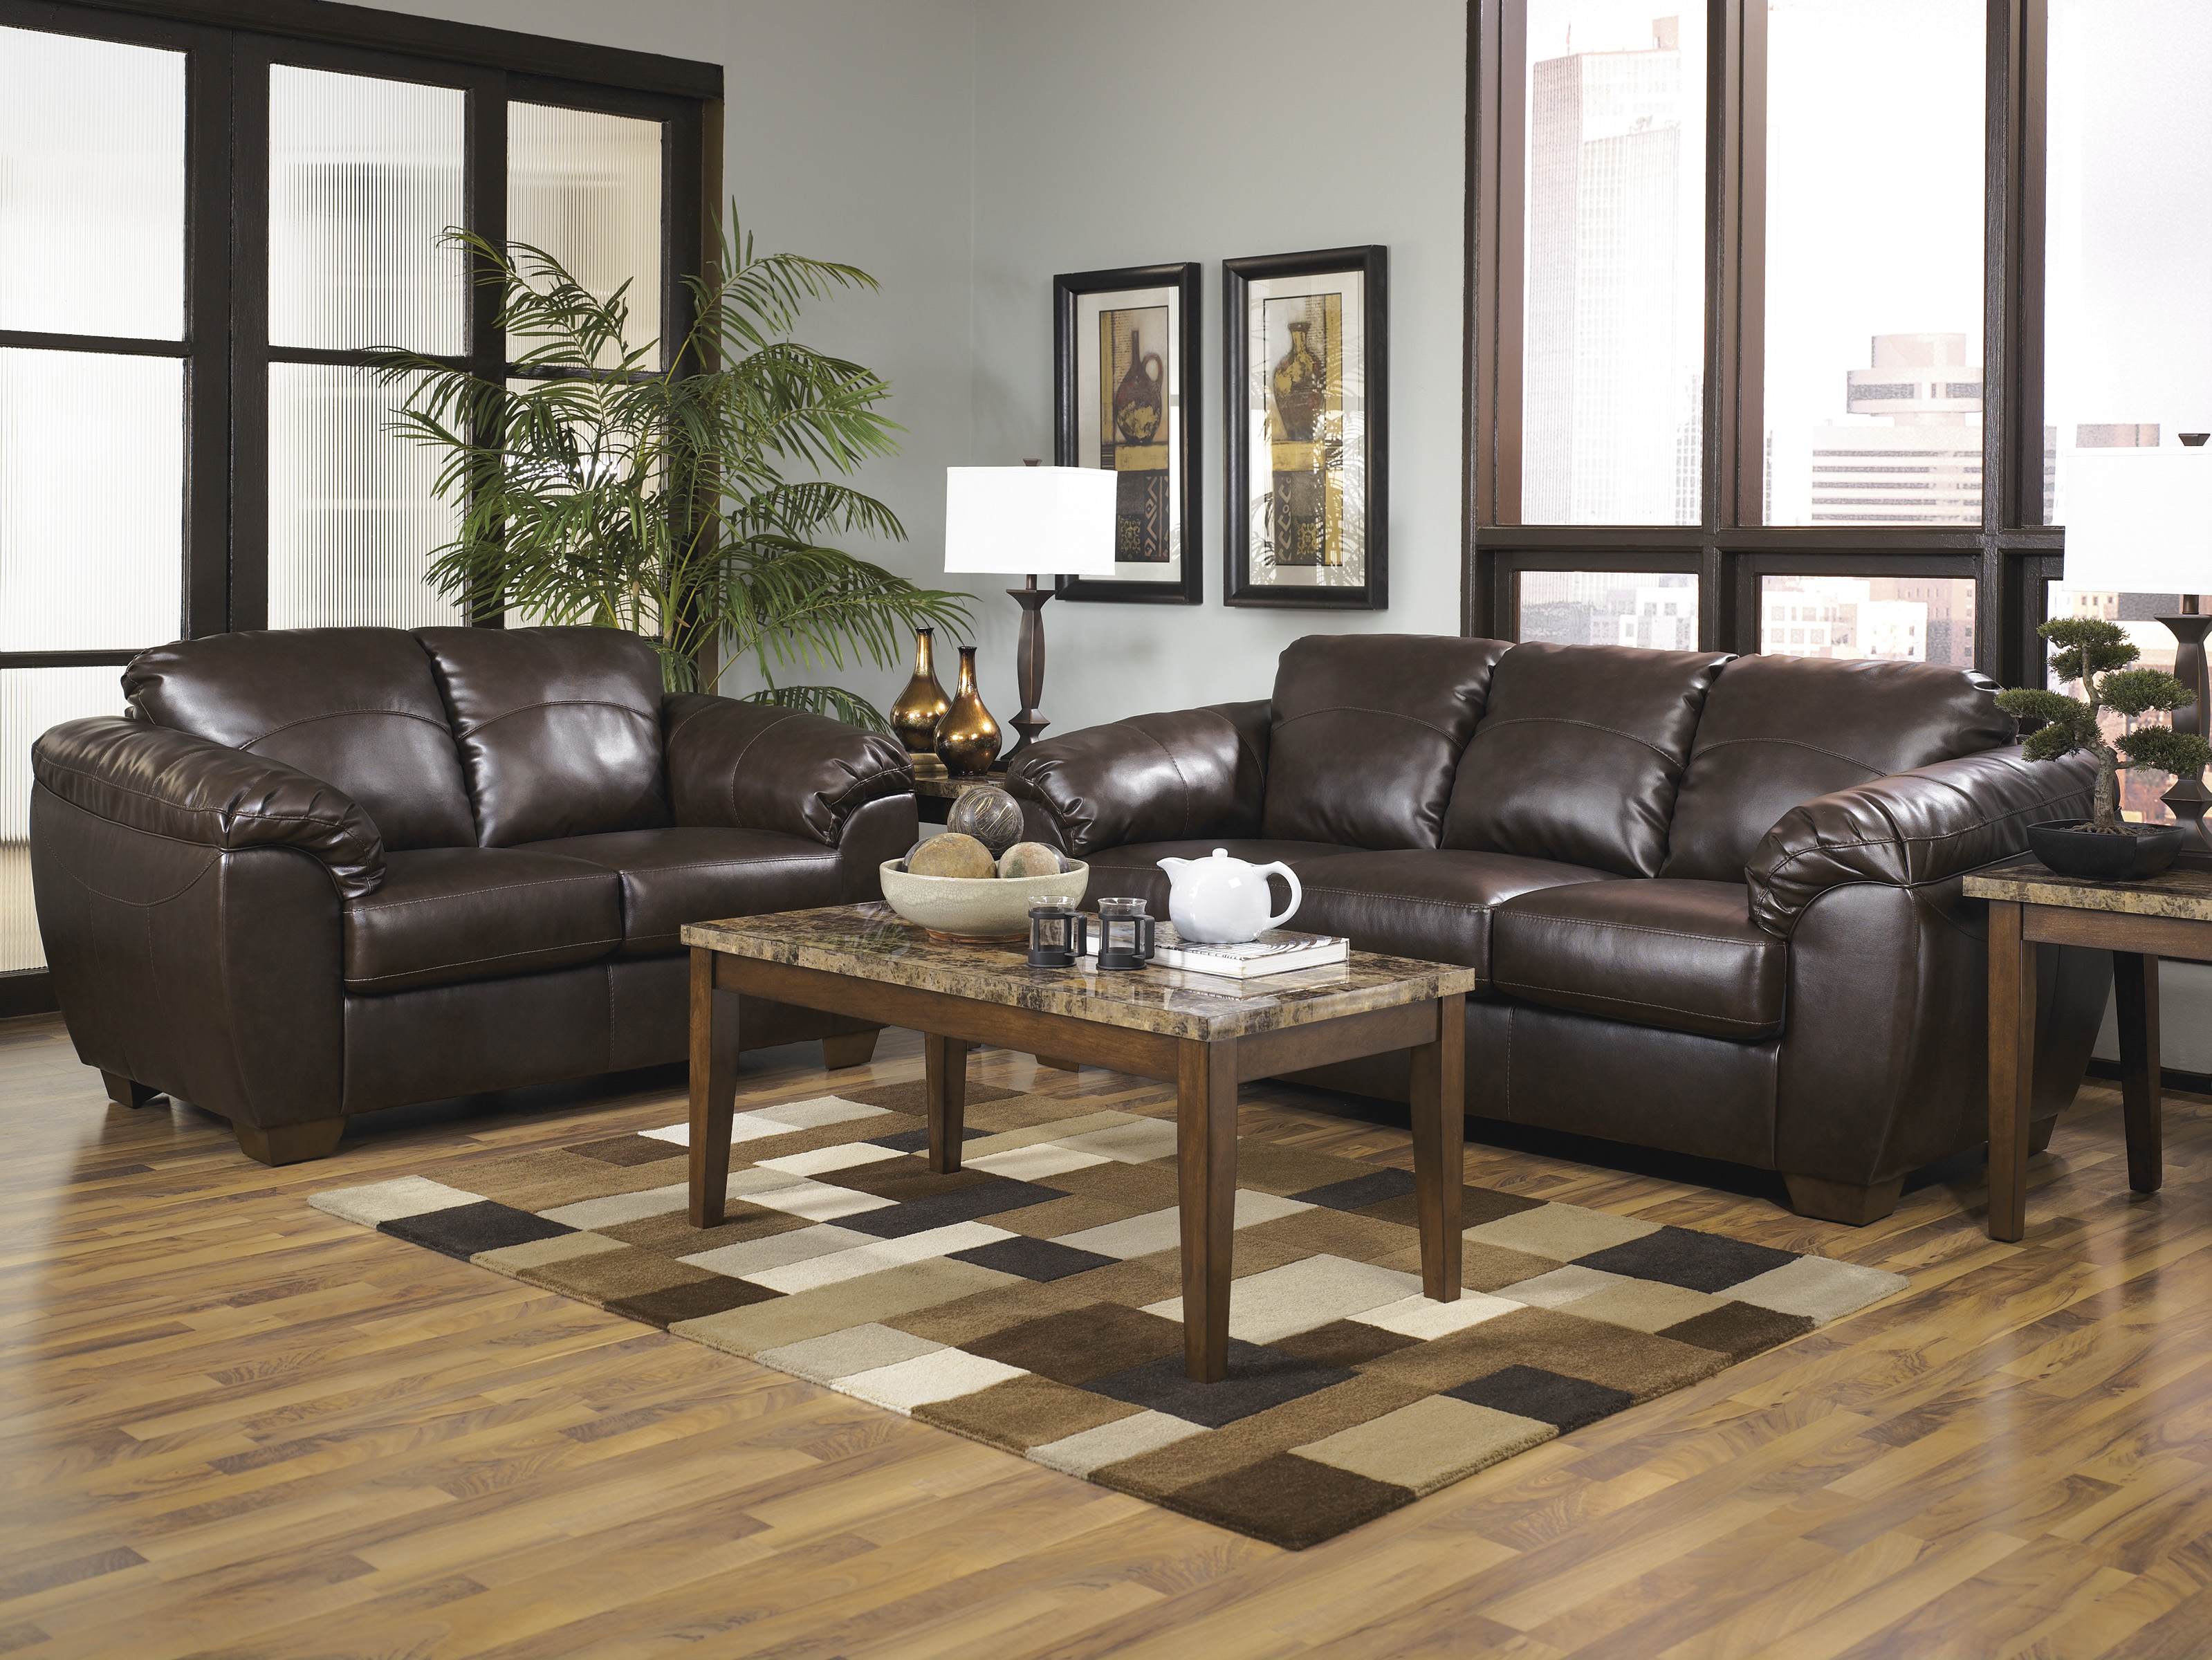 Family Discount Furniture Leather Sofas Family Discount Furniture